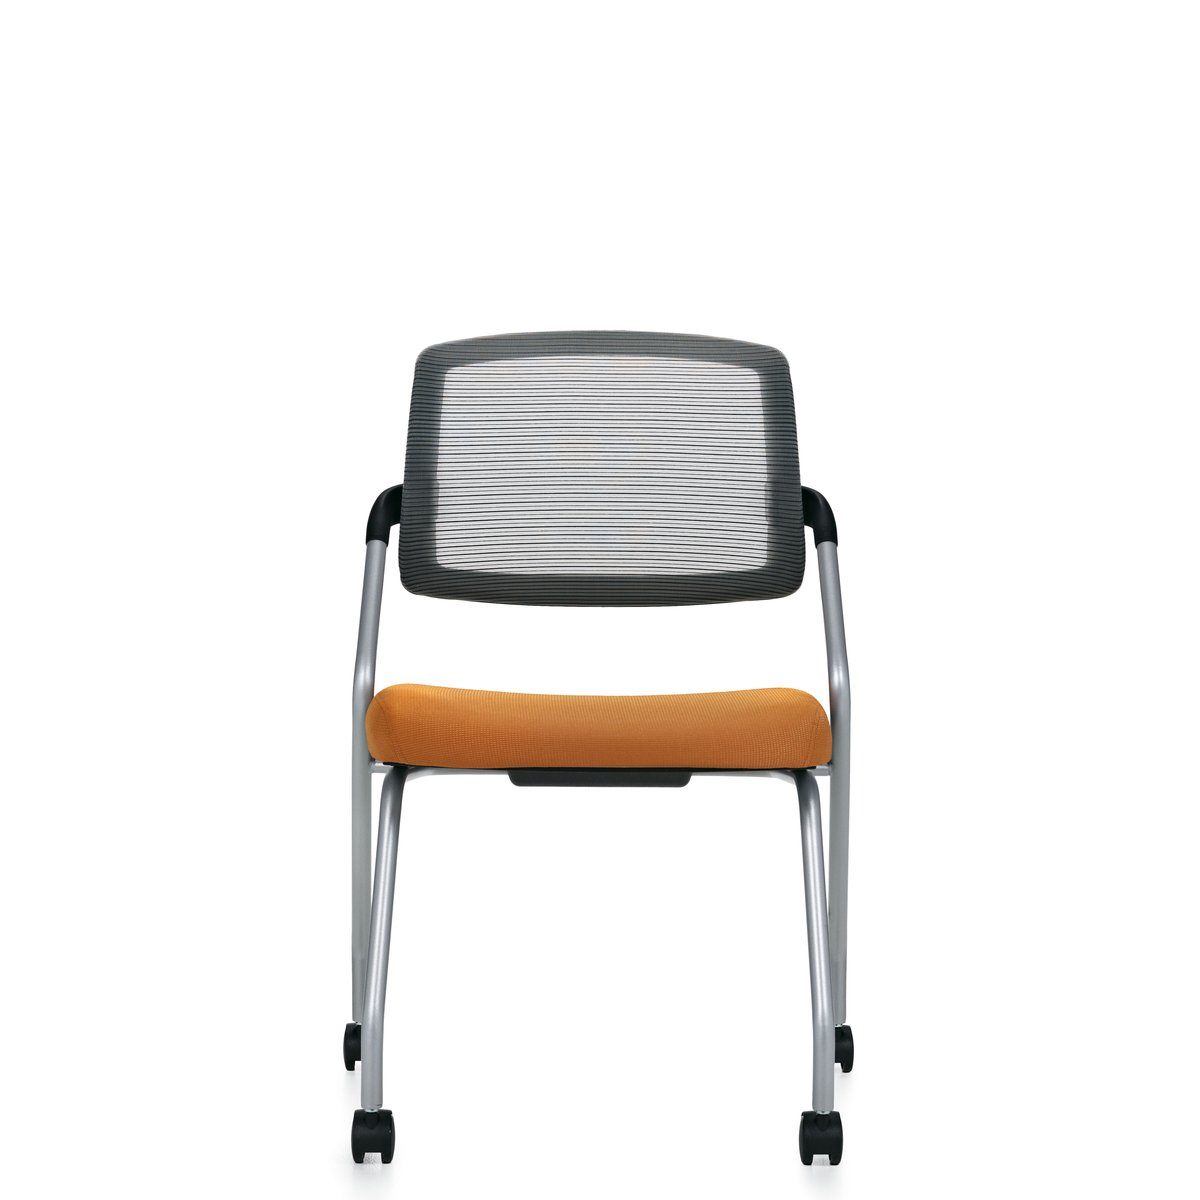 Spritz flip seat nesting chair, model 6764C. This chair has been placed on a white background.